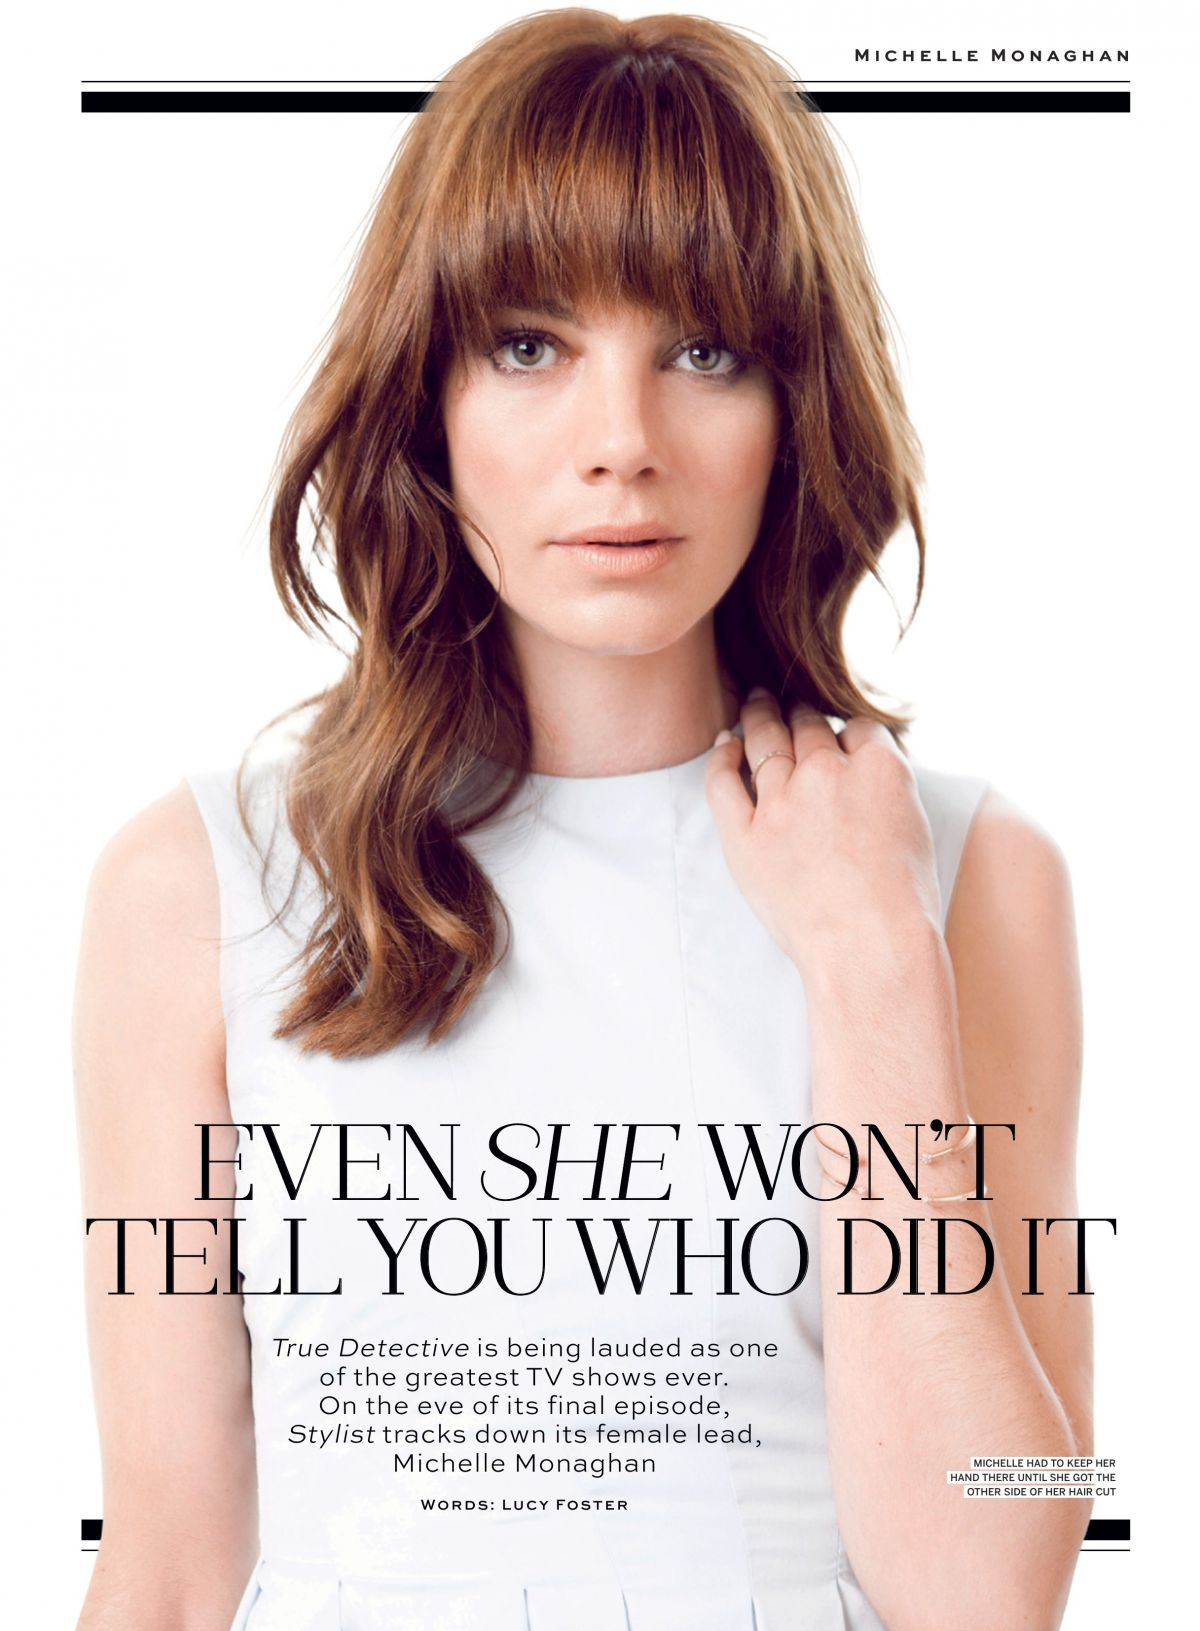 MICHELLE MONAGHAN in Stylist Magazine, April 9th 2014 Issue